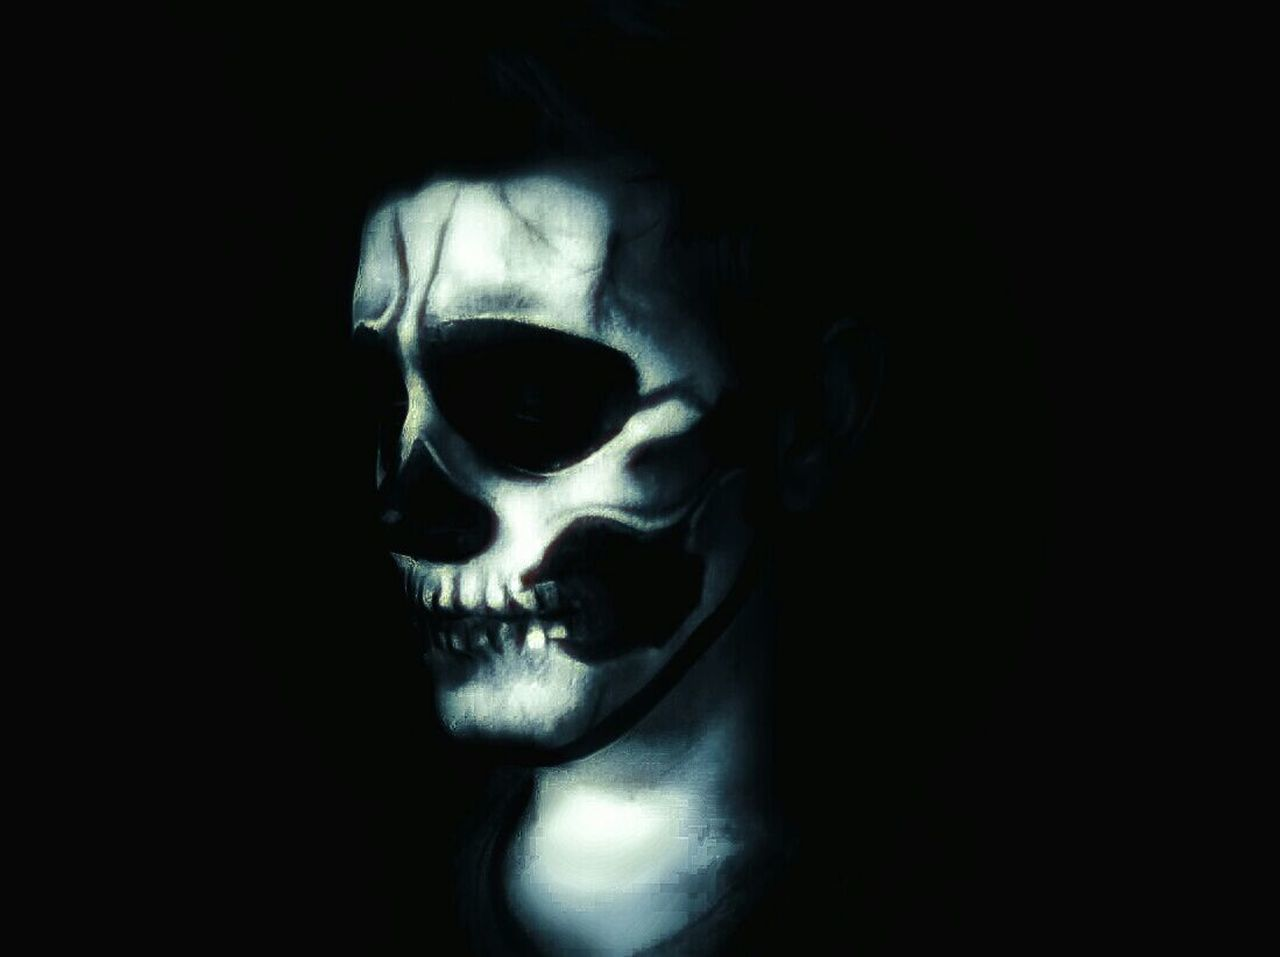 Spooky Mystery Black Background Horror Evil Dark One Person Adults Only Close-up One Man Only Adult People Silence Indoors  Only Men Studio Shot Real People Human Skin Skull Face Skeleton EyeEmNewHere Human Body Part Monster Creativity